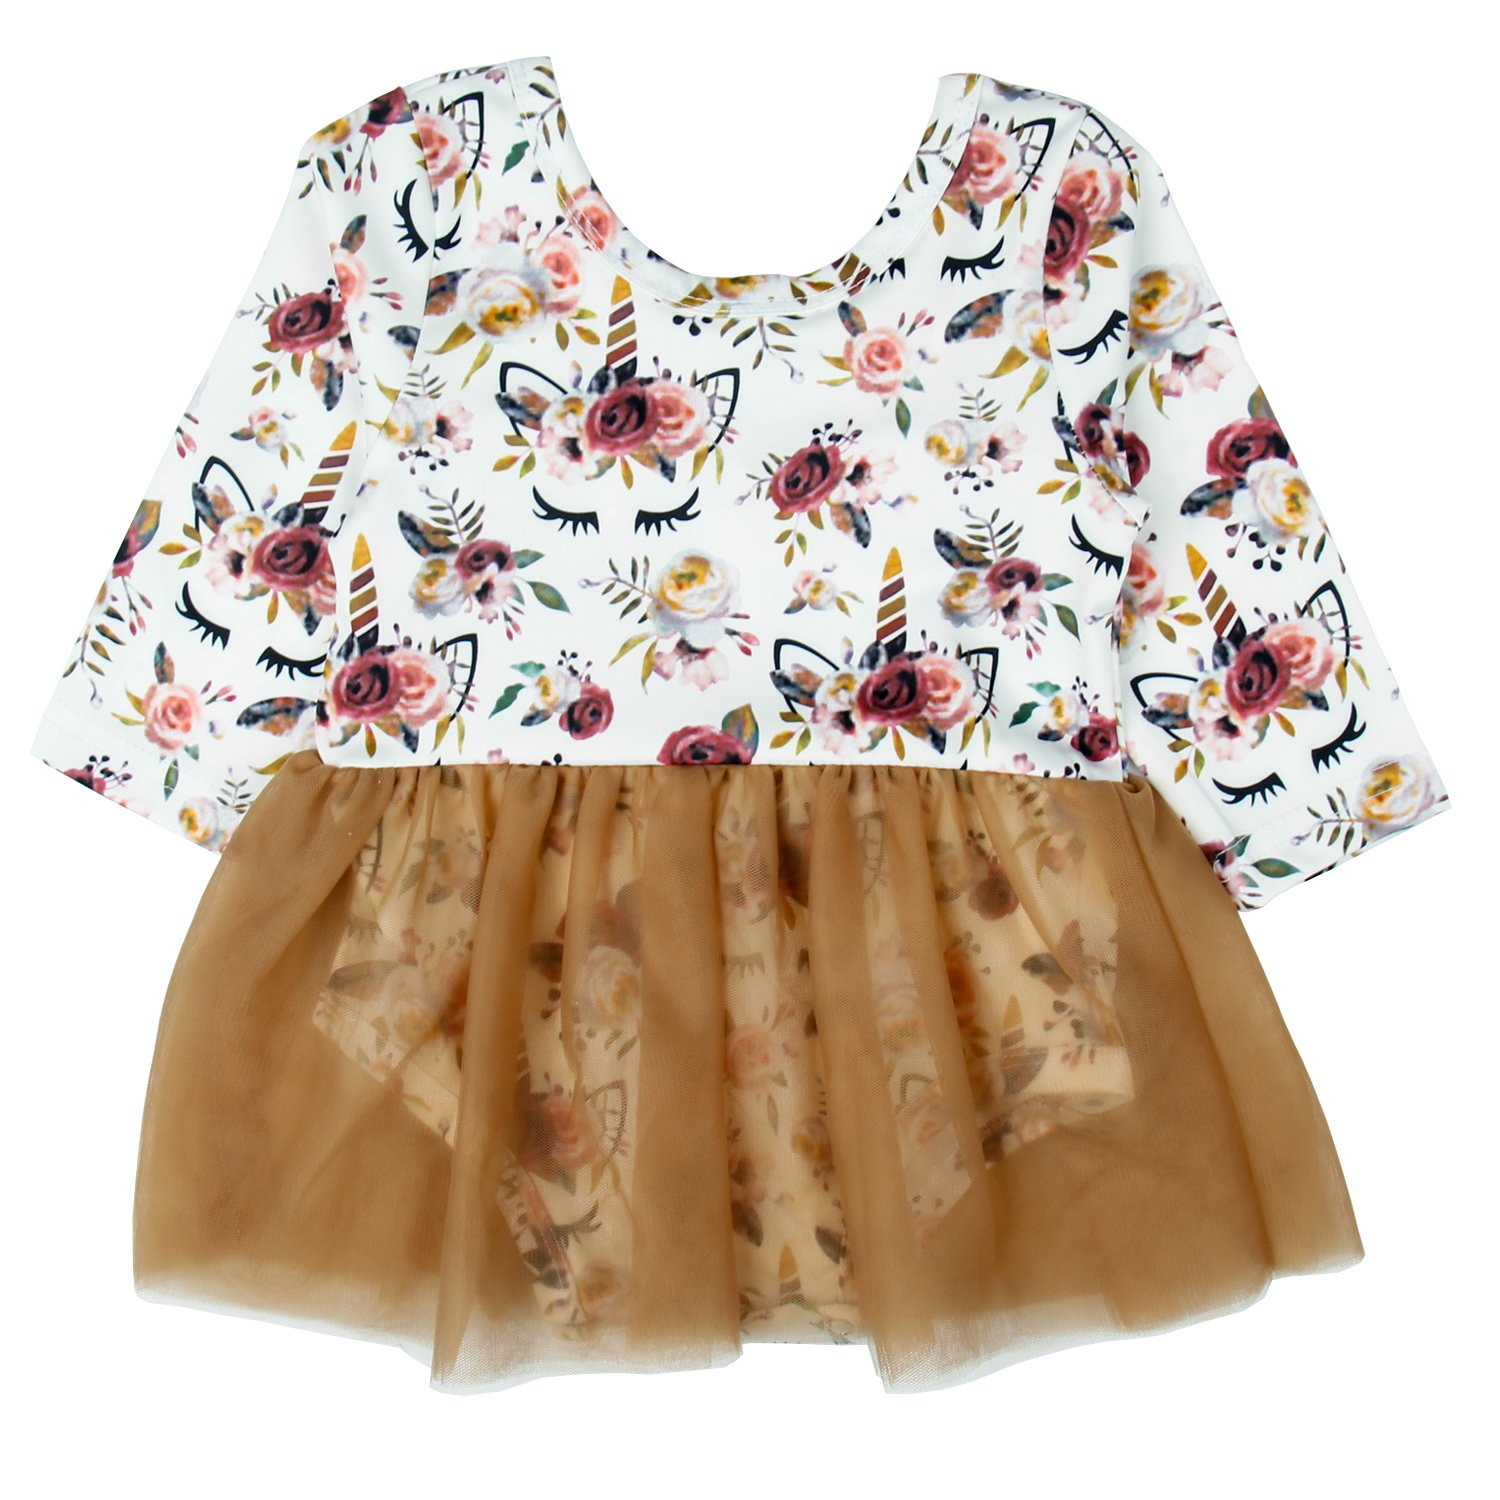 Infant Baby Girl Romper Long Sleeve Floral Unicorn Skirt Outfit Casual Clothes Set